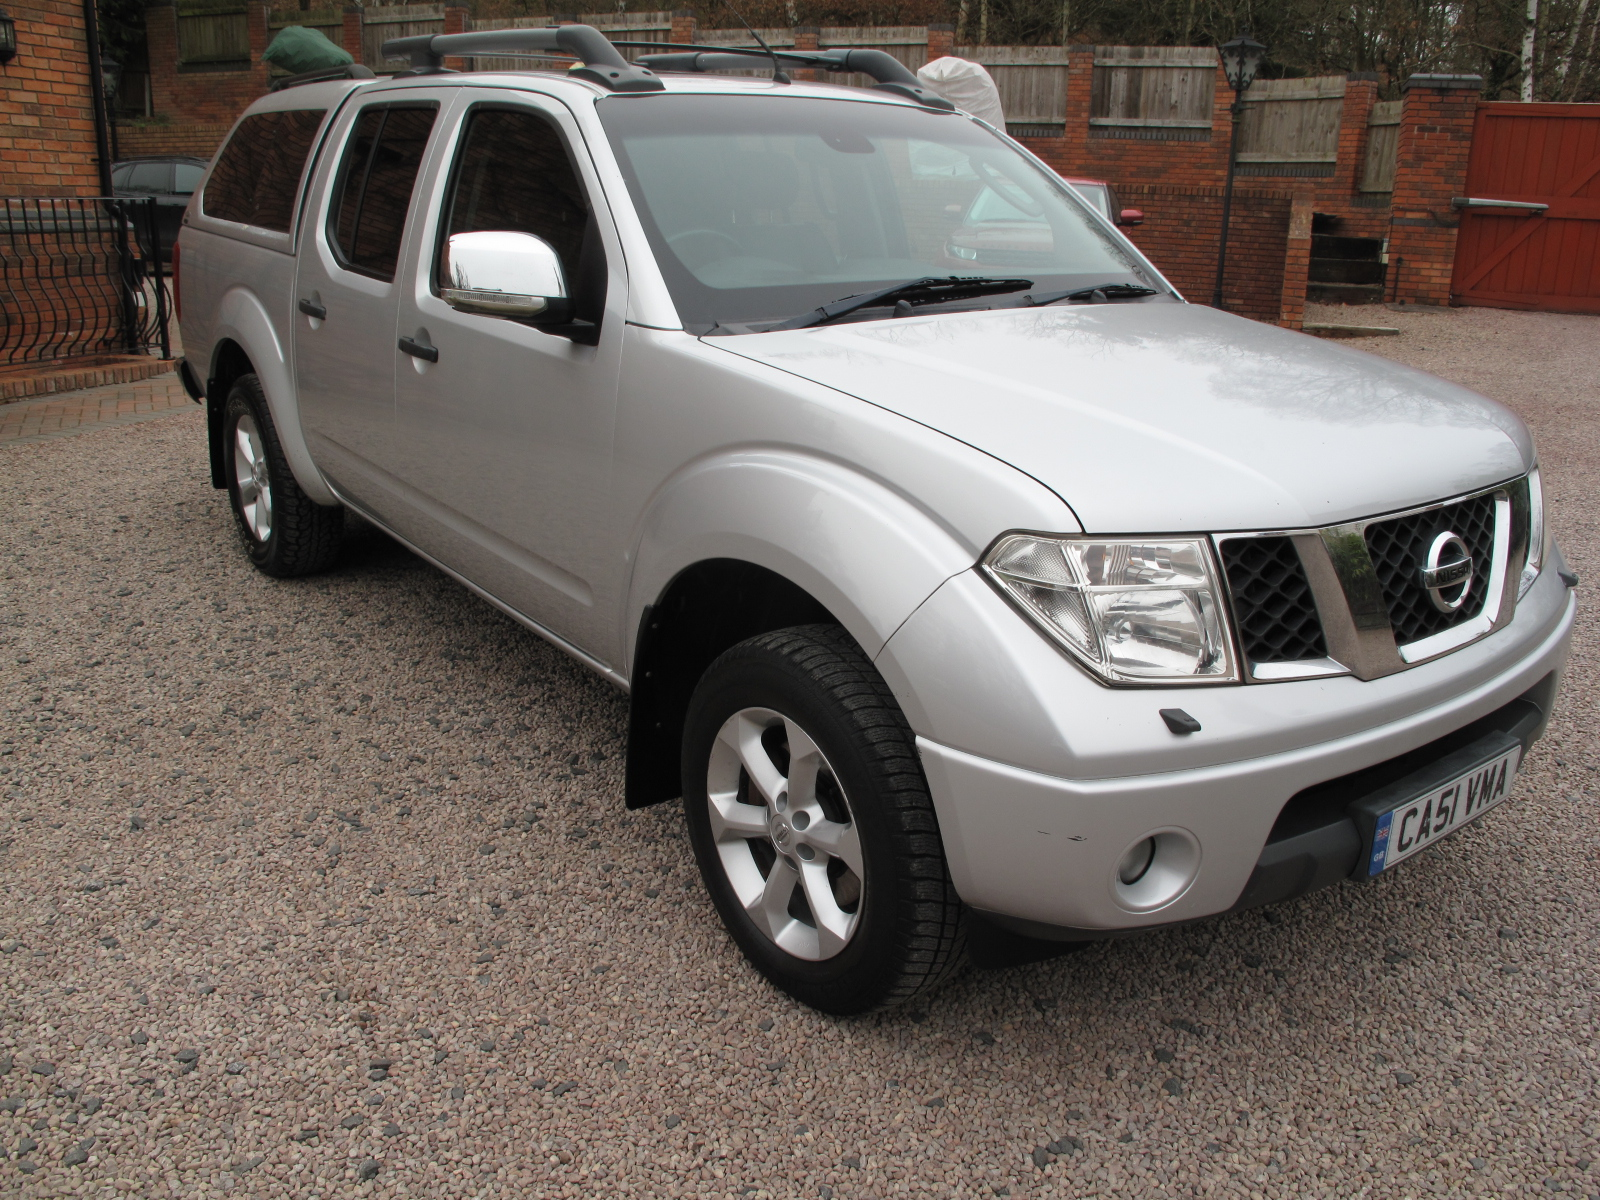 2010 Nissan Navara 2.5 dCi Tekna Double Cab Pickup 4dr 1 previous Lady Owner, only used as a car! EXCELLENT CONDITION NO VAT! SOLD!